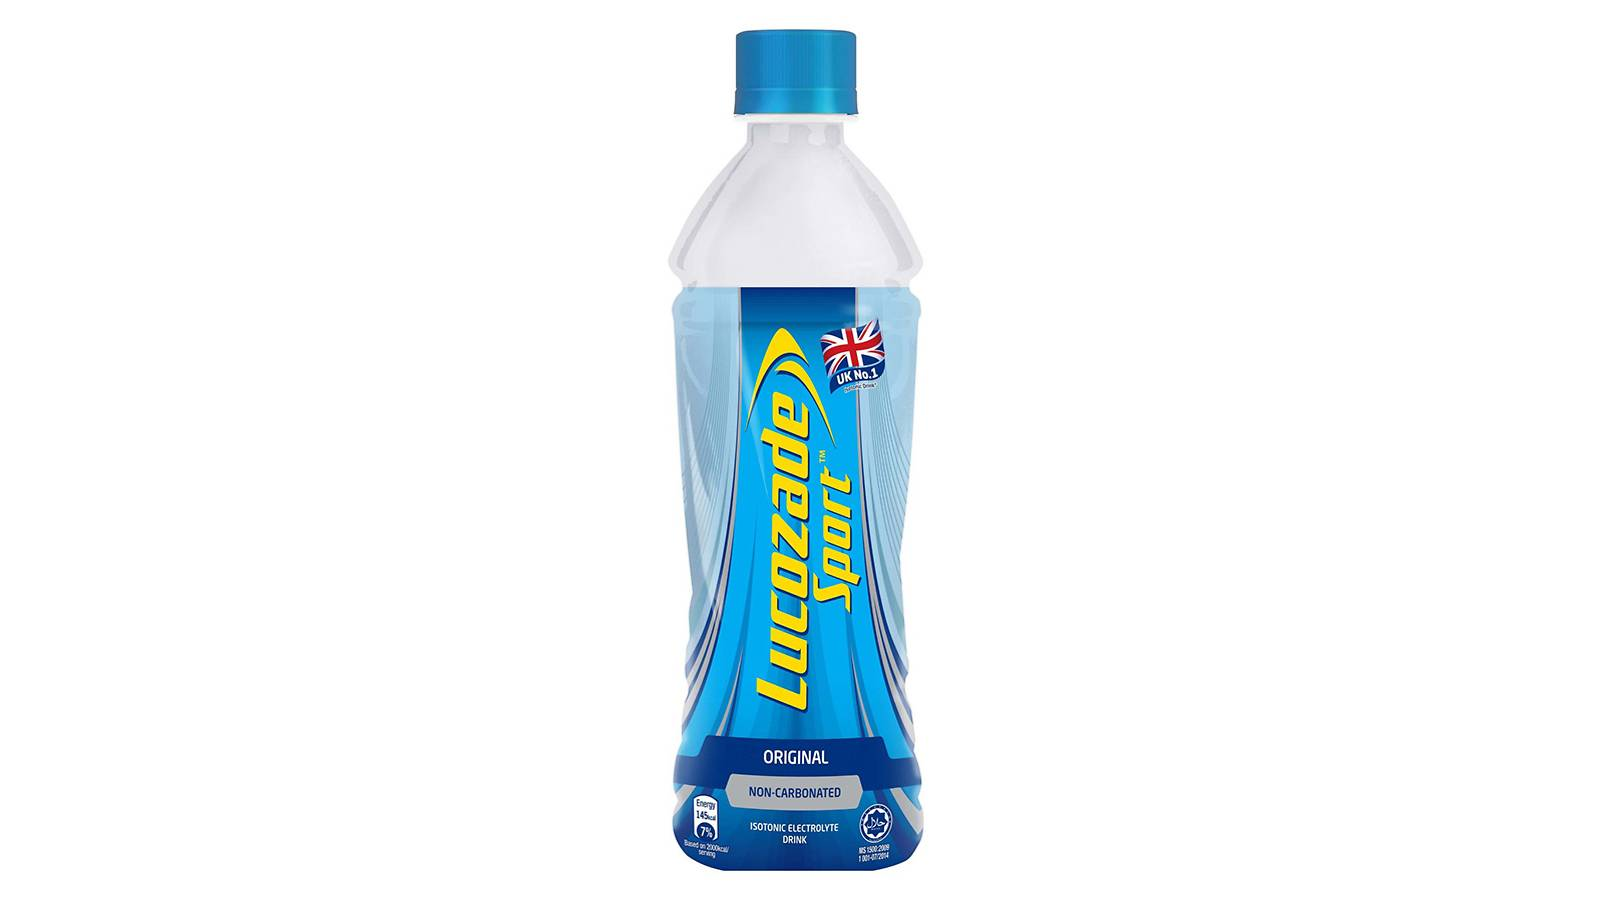 Lucozade Isotonic Drink (Original /Non-carbonated) drink